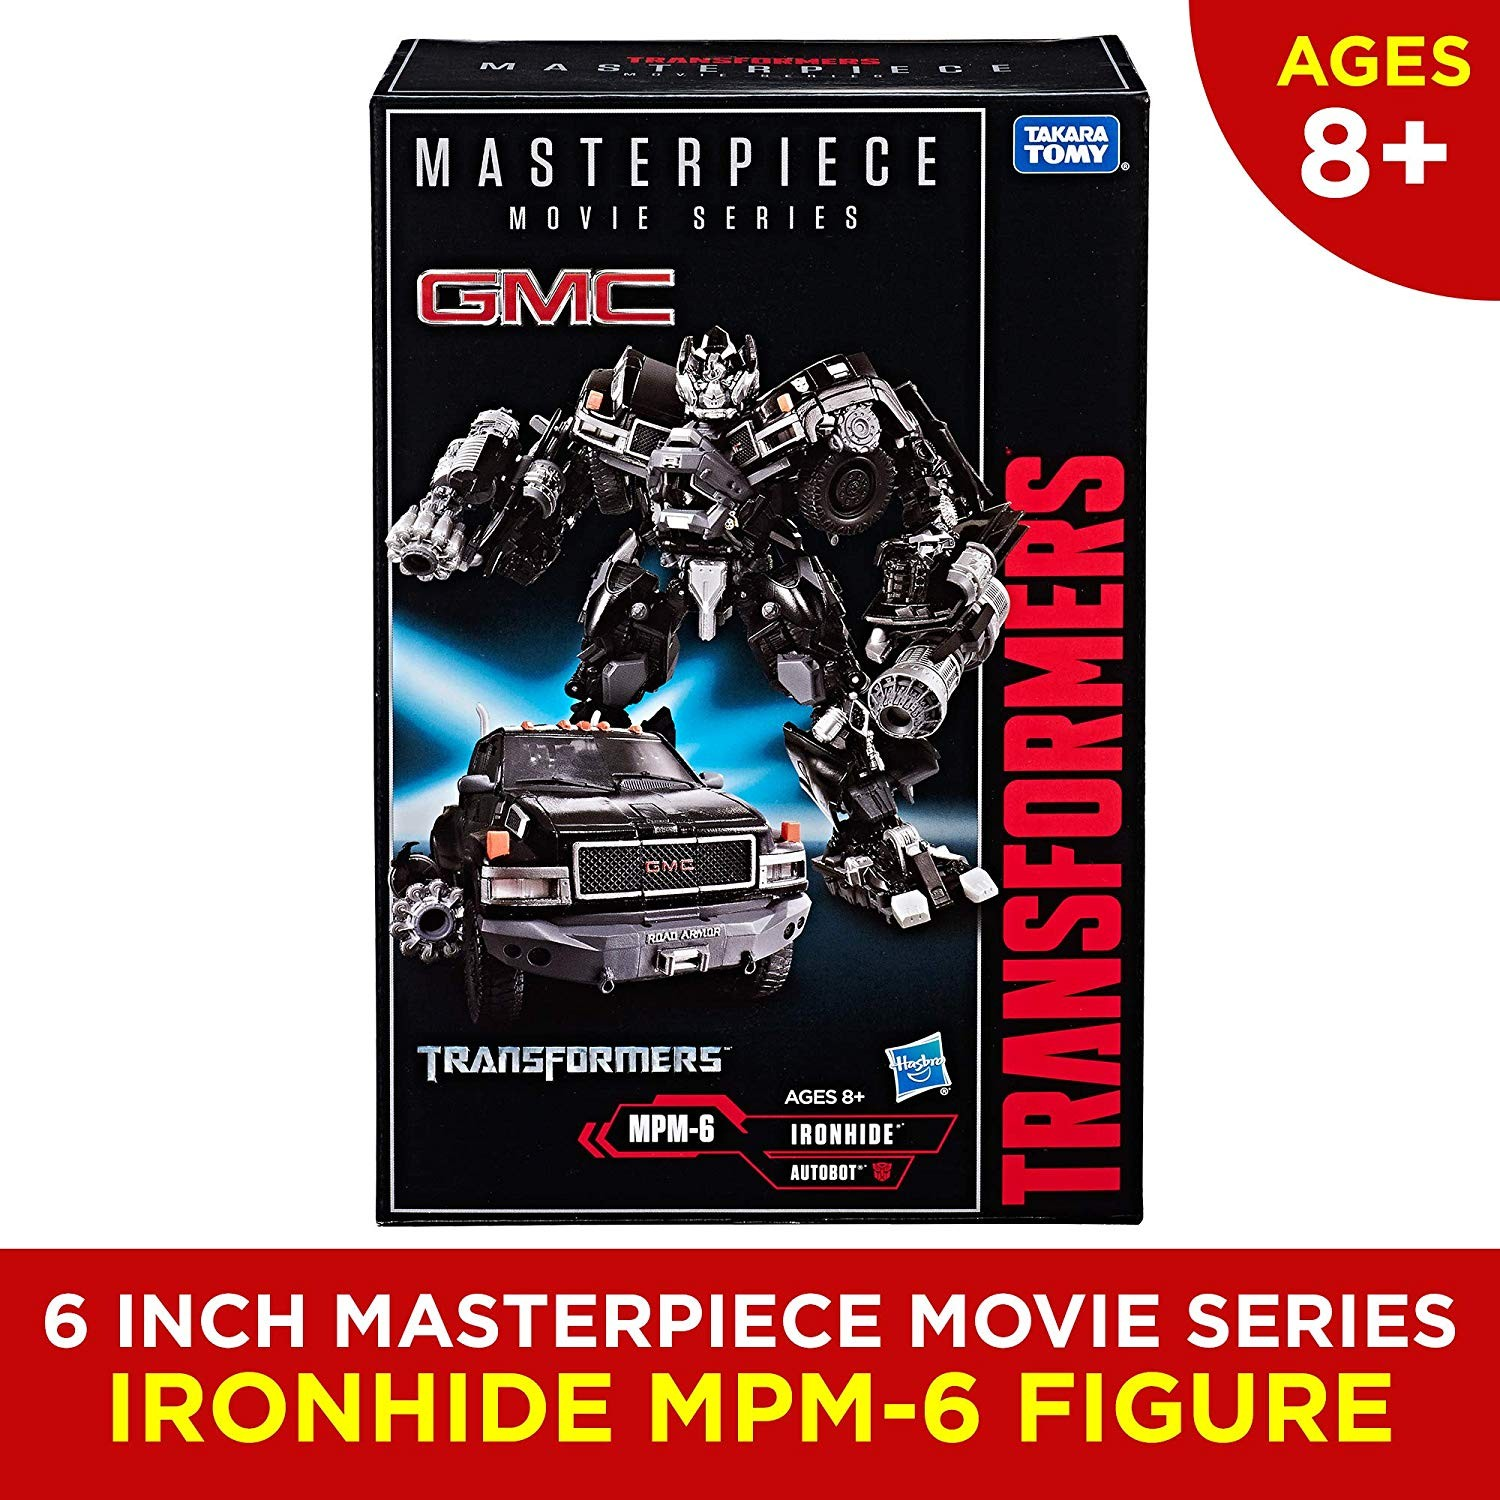 masterpiece movie series mpm 6 ironhide available now at amazon com